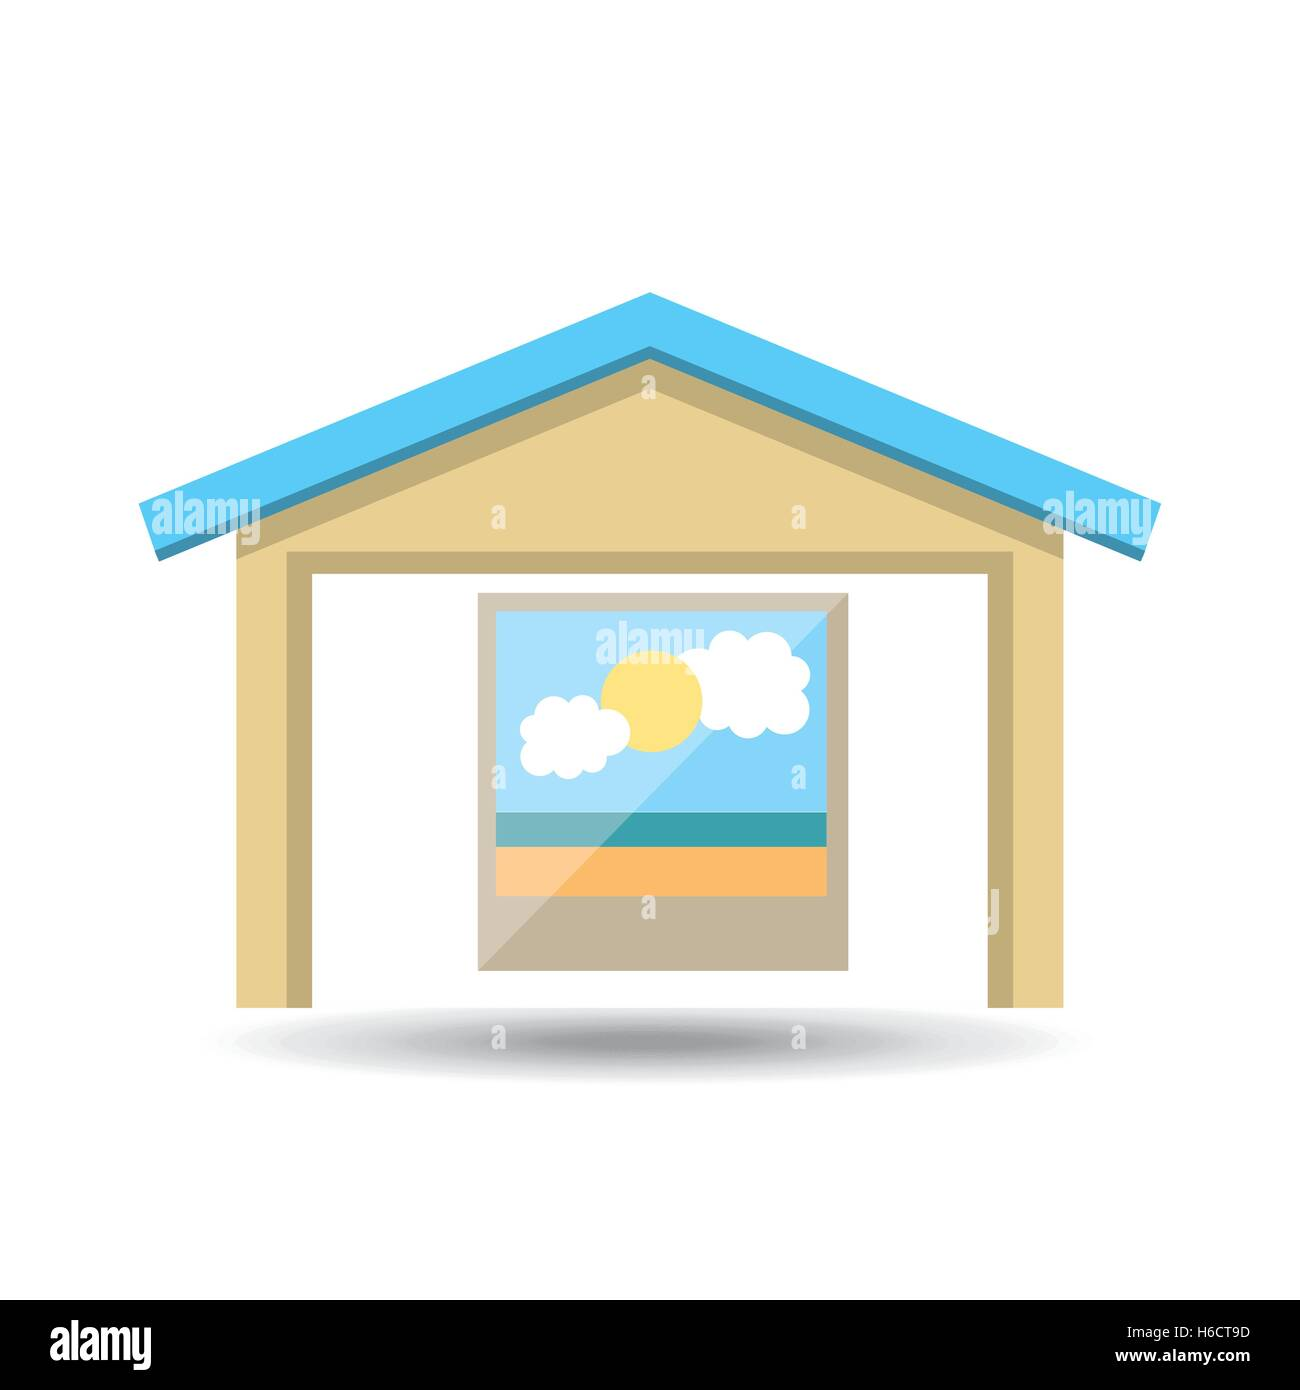 concept security iamge picture file design vector illustration - Stock Image